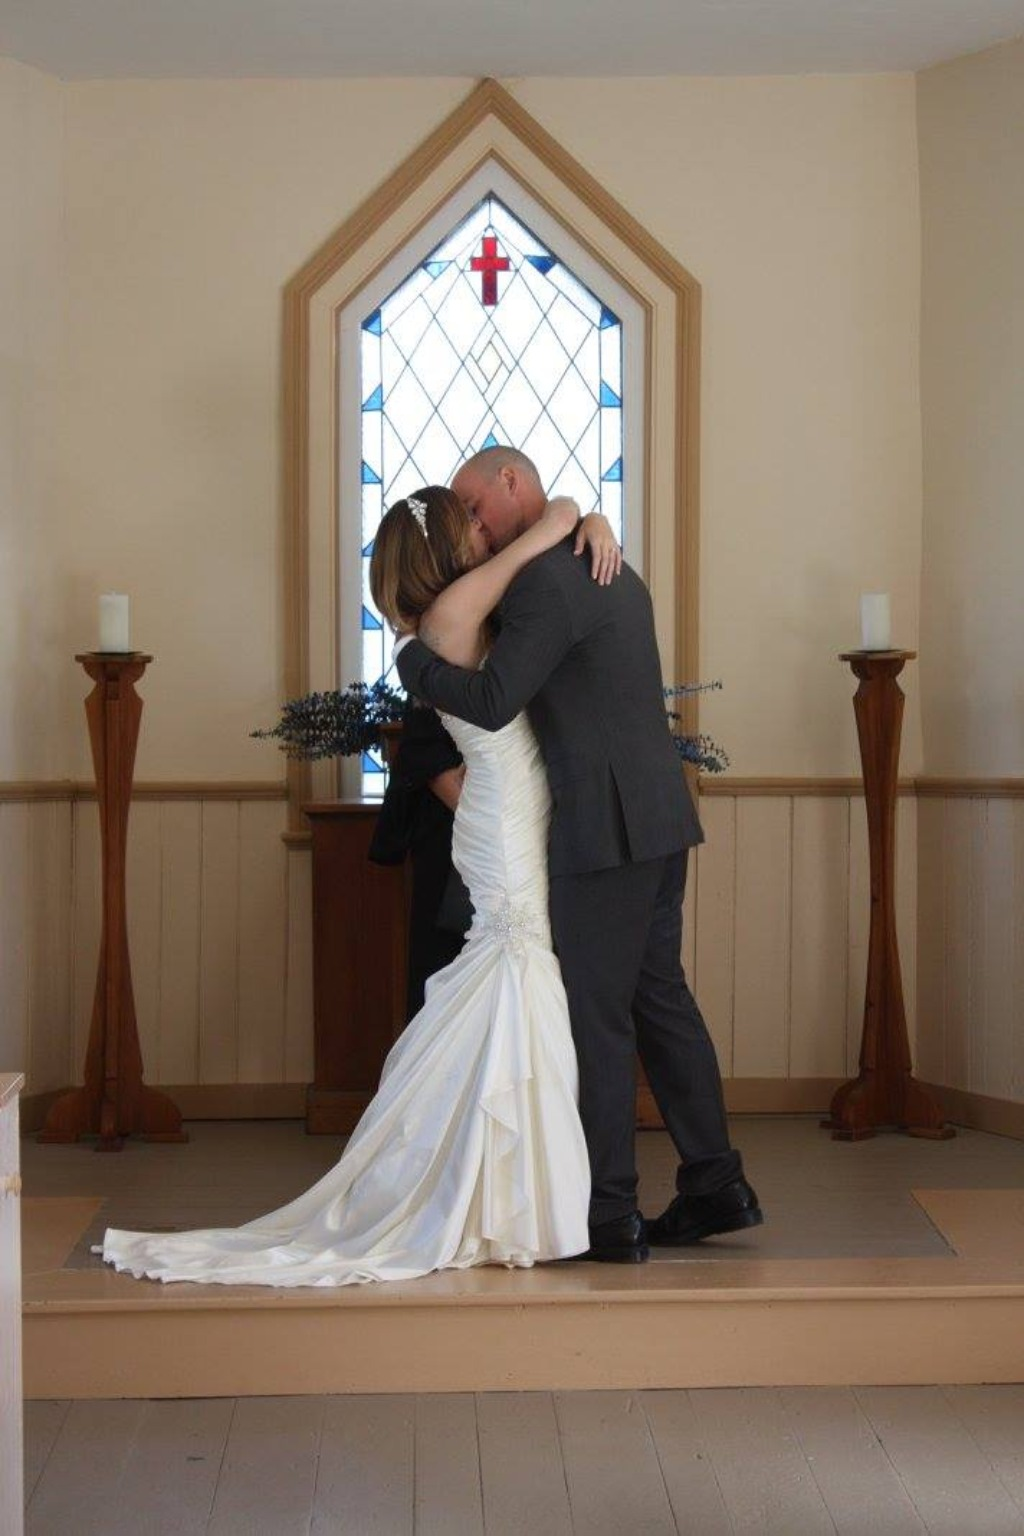 Get Married in Georgina! Everything from licenses, halls, officiants, ceremonies and receptions.